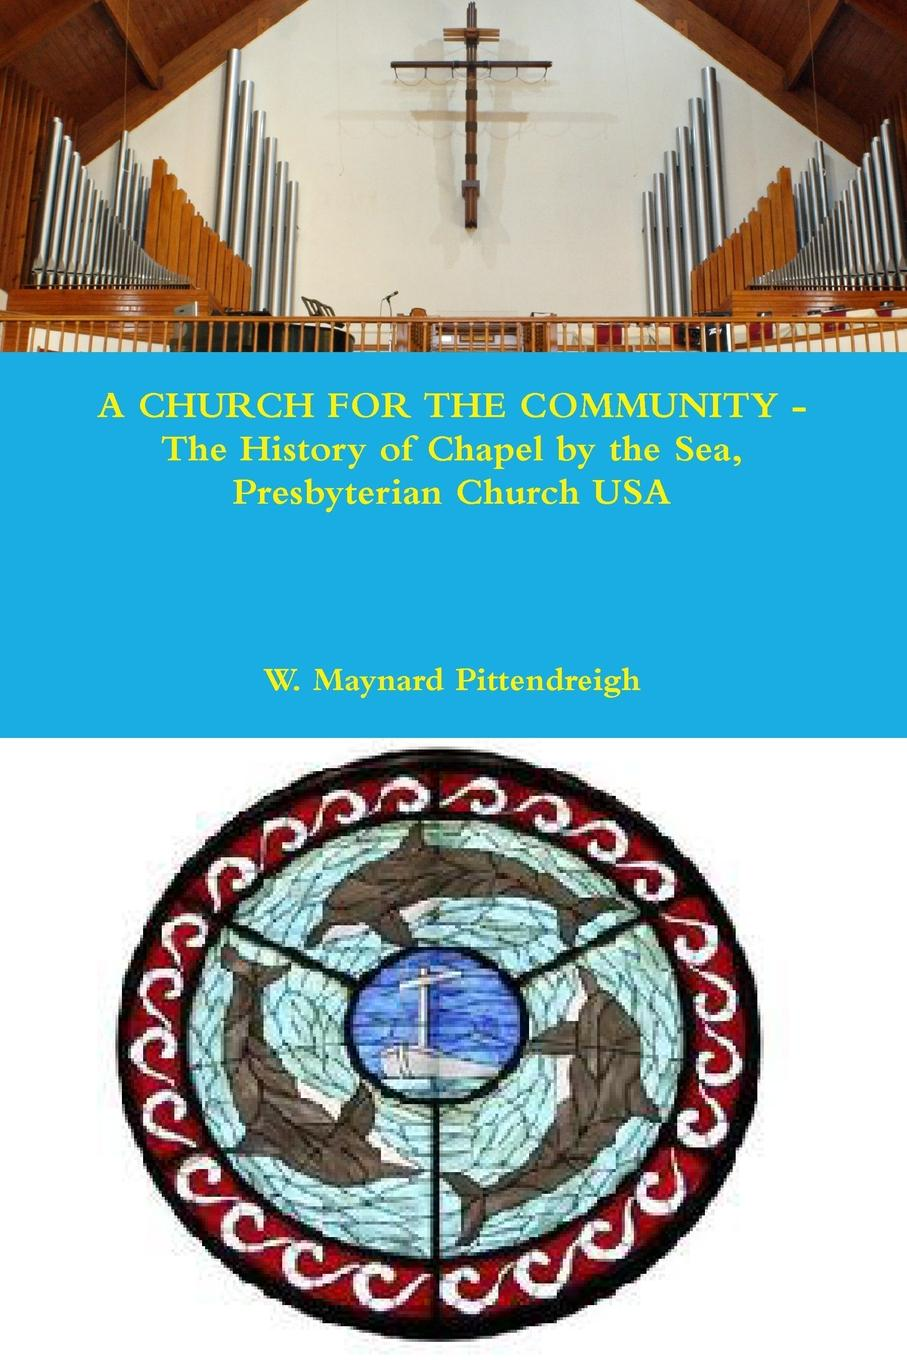 W. Maynard Pittendreigh A CHURCH FOR THE COMMUNITY - The History of Chapel by the Sea, Presbyterian Church USA shelly o foran little zion a church baptized by fire